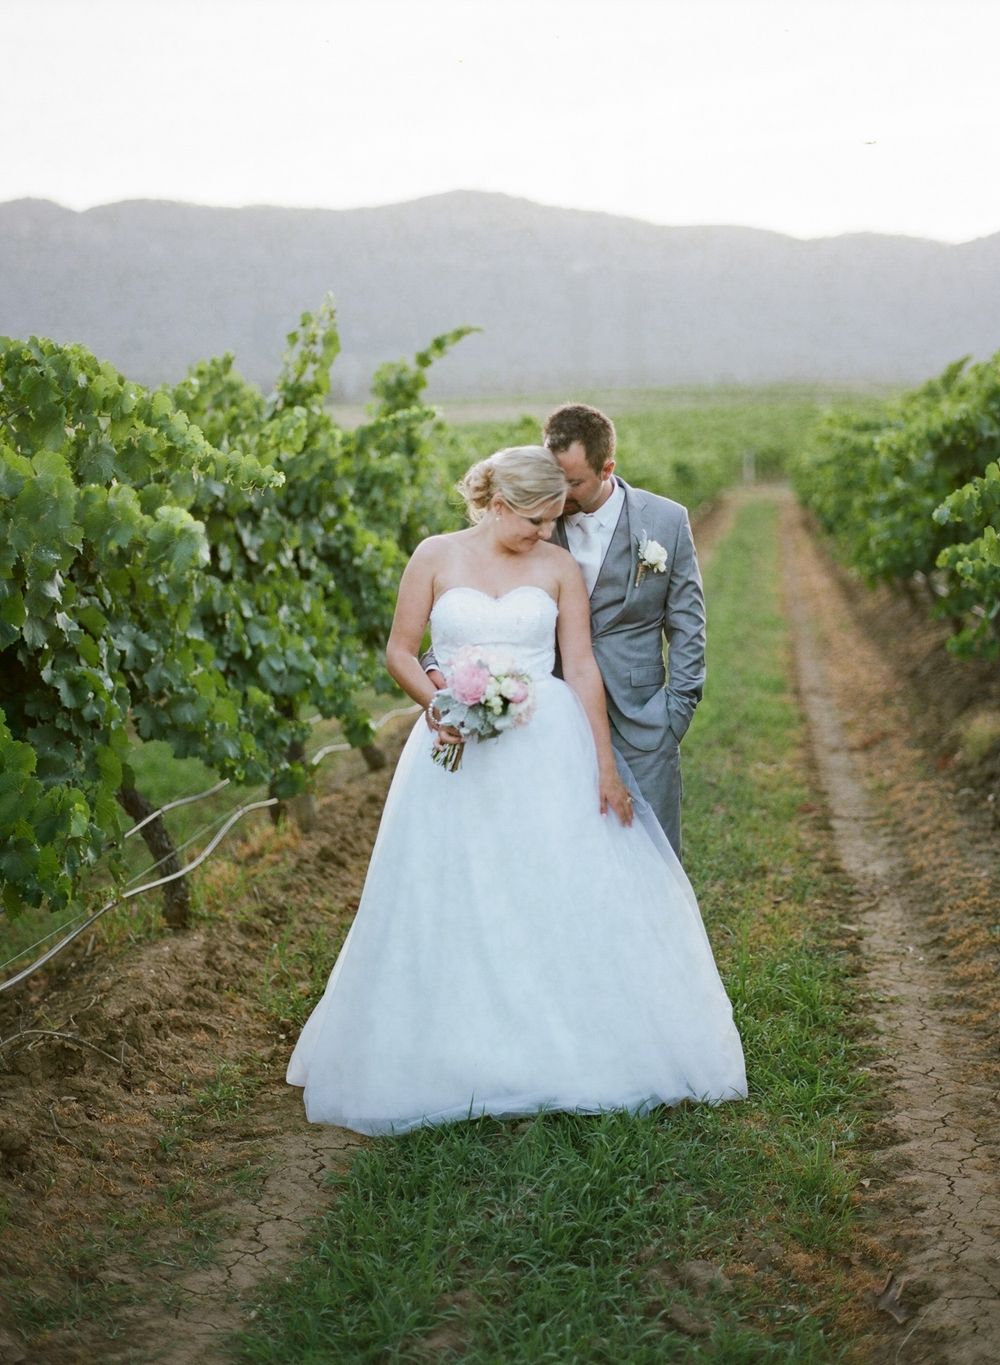 Hunter Valley wedding by Mr Edwards Photography_0737_1075.jpg